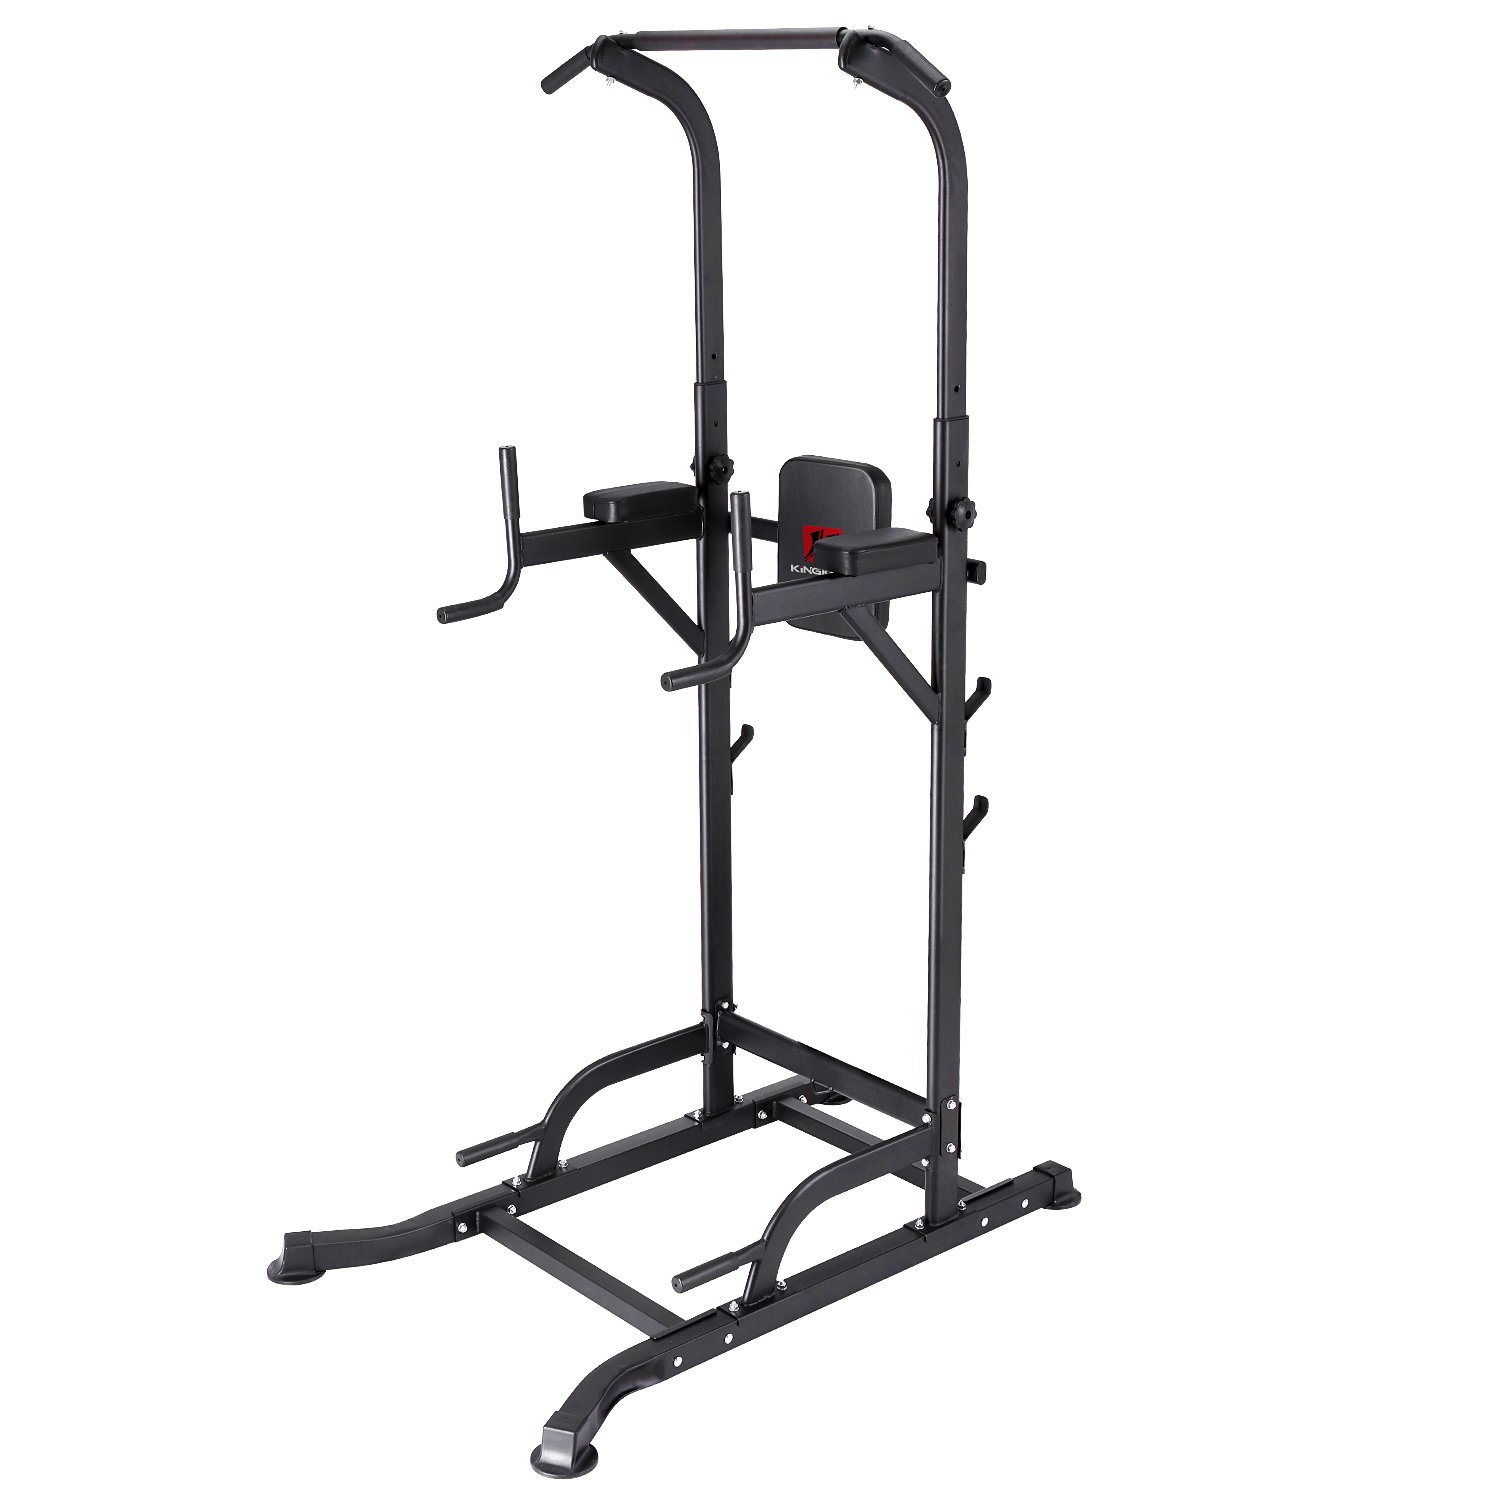 KiNGKANG Power Tower Adjustable Height Multi-Function Home Strength Training Fitness Workout Station